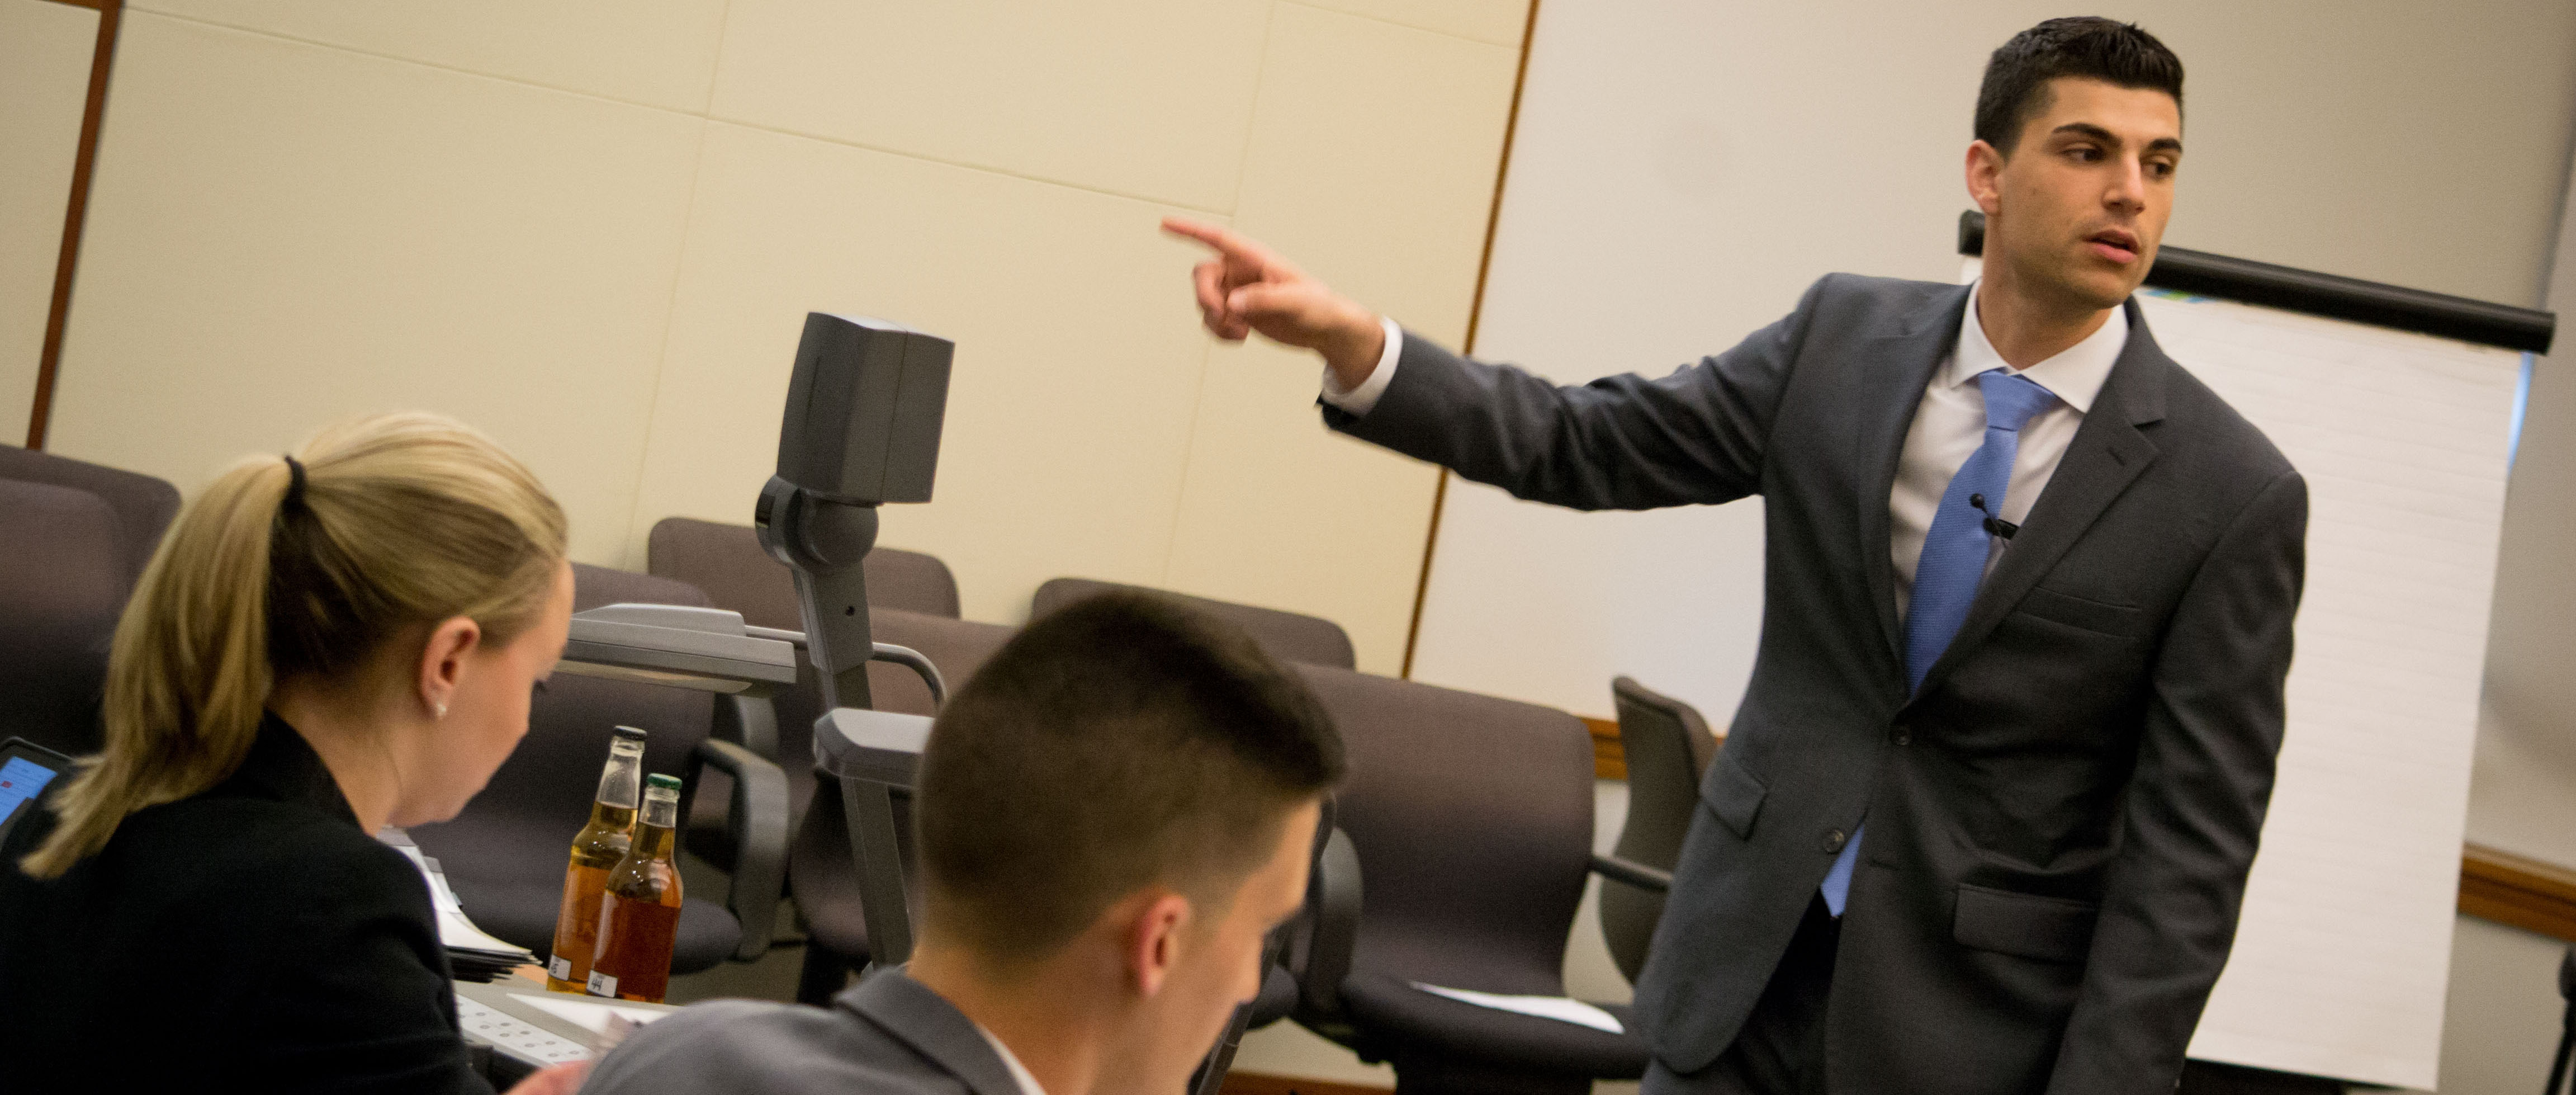 Phillip Pasquarello emphatically makes a point in a business suit, pointing toward the evidence